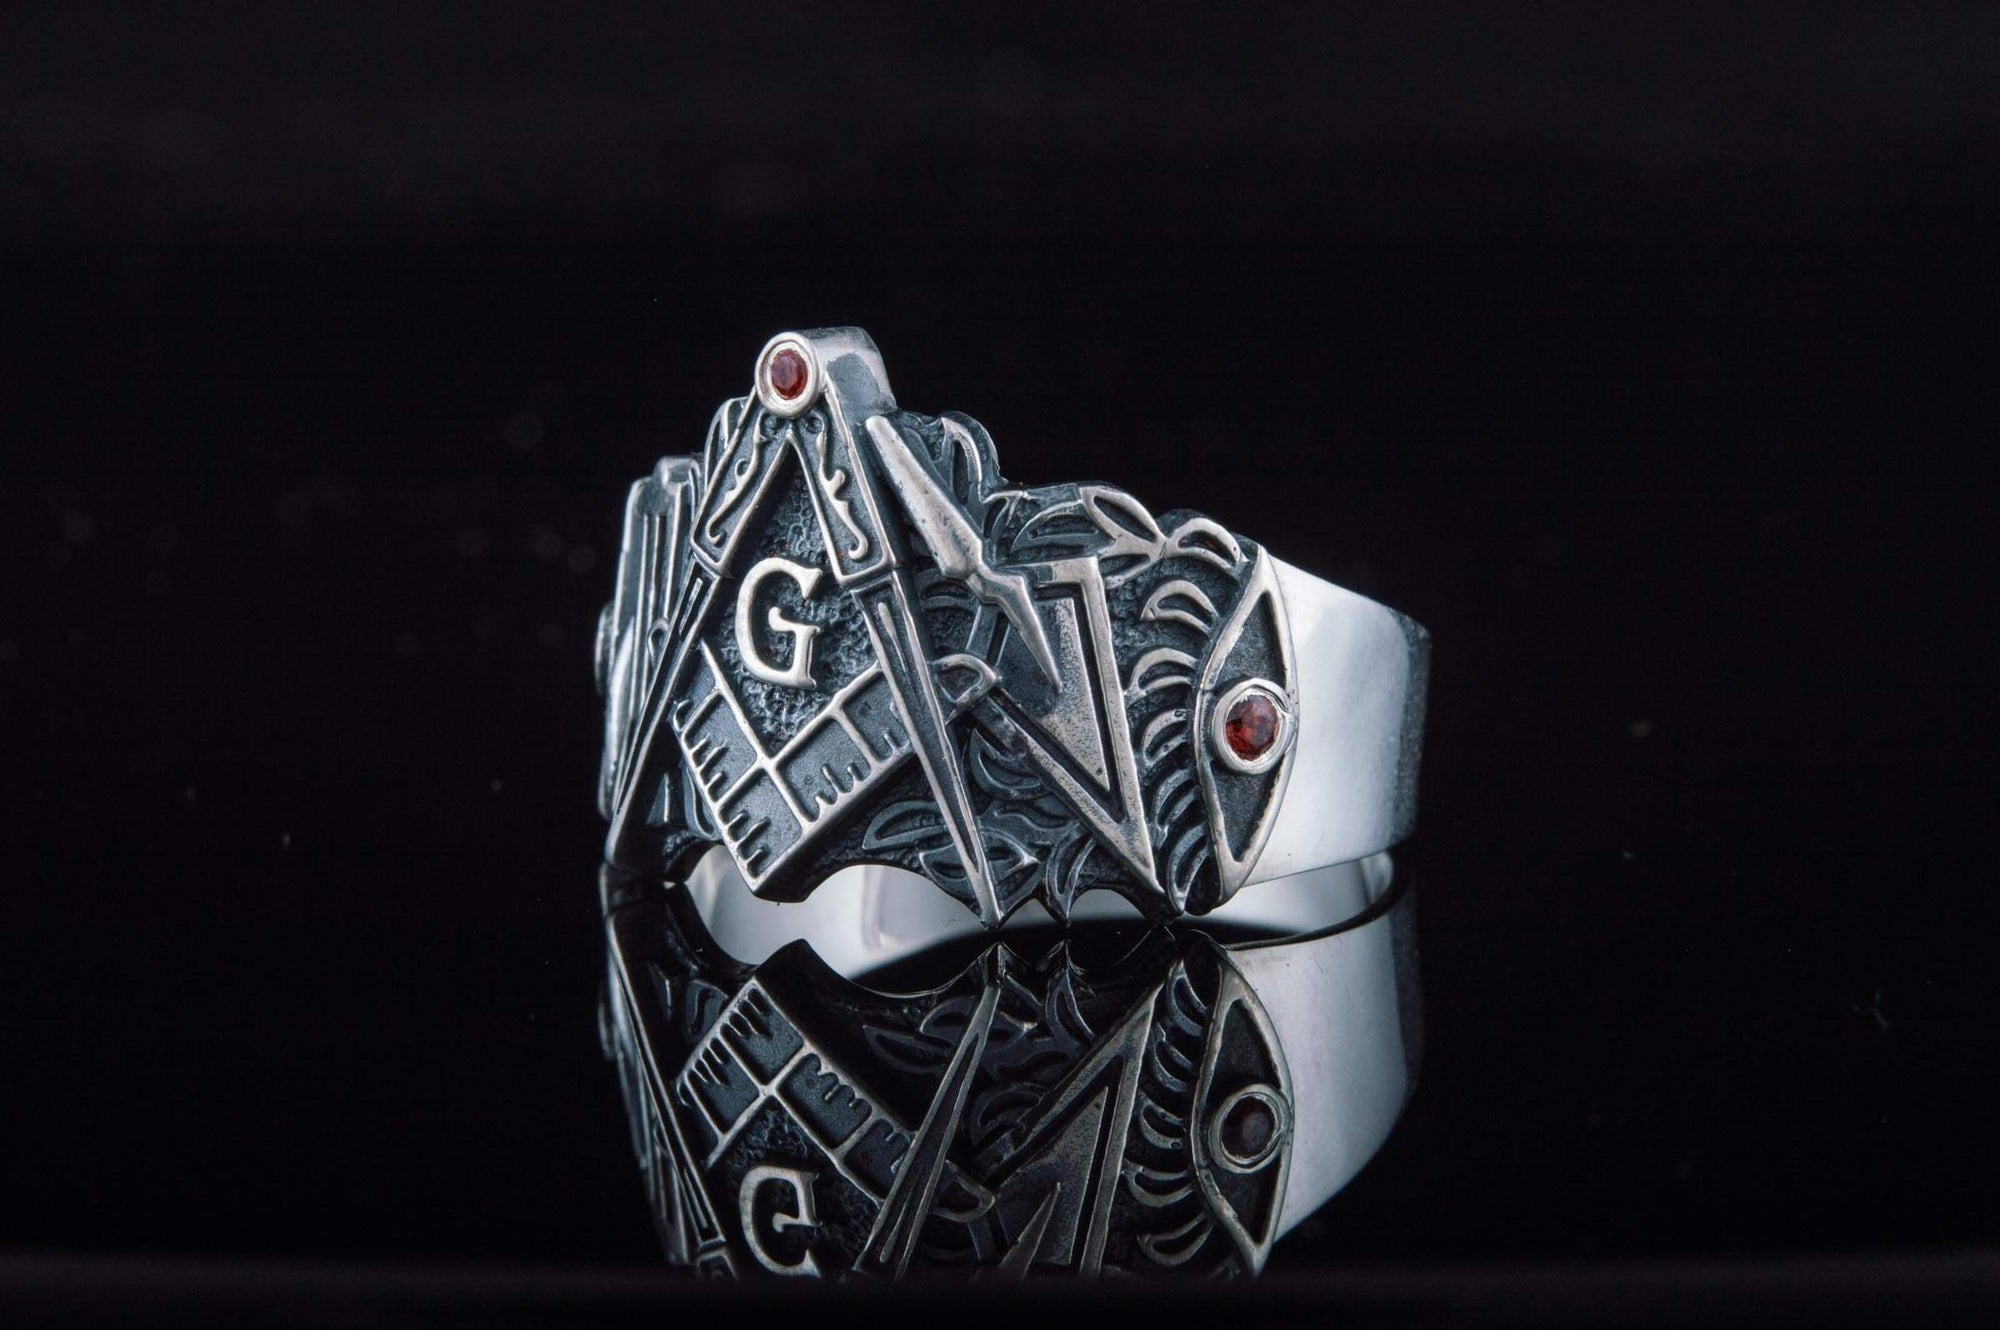 Rings Masonic Square Compass & Symbols with Red Cubic Zirconia Unique Ring Ancient Treasures Ancientreasures Viking Odin Thor Mjolnir Celtic Ancient Egypt Norse Norse Mythology